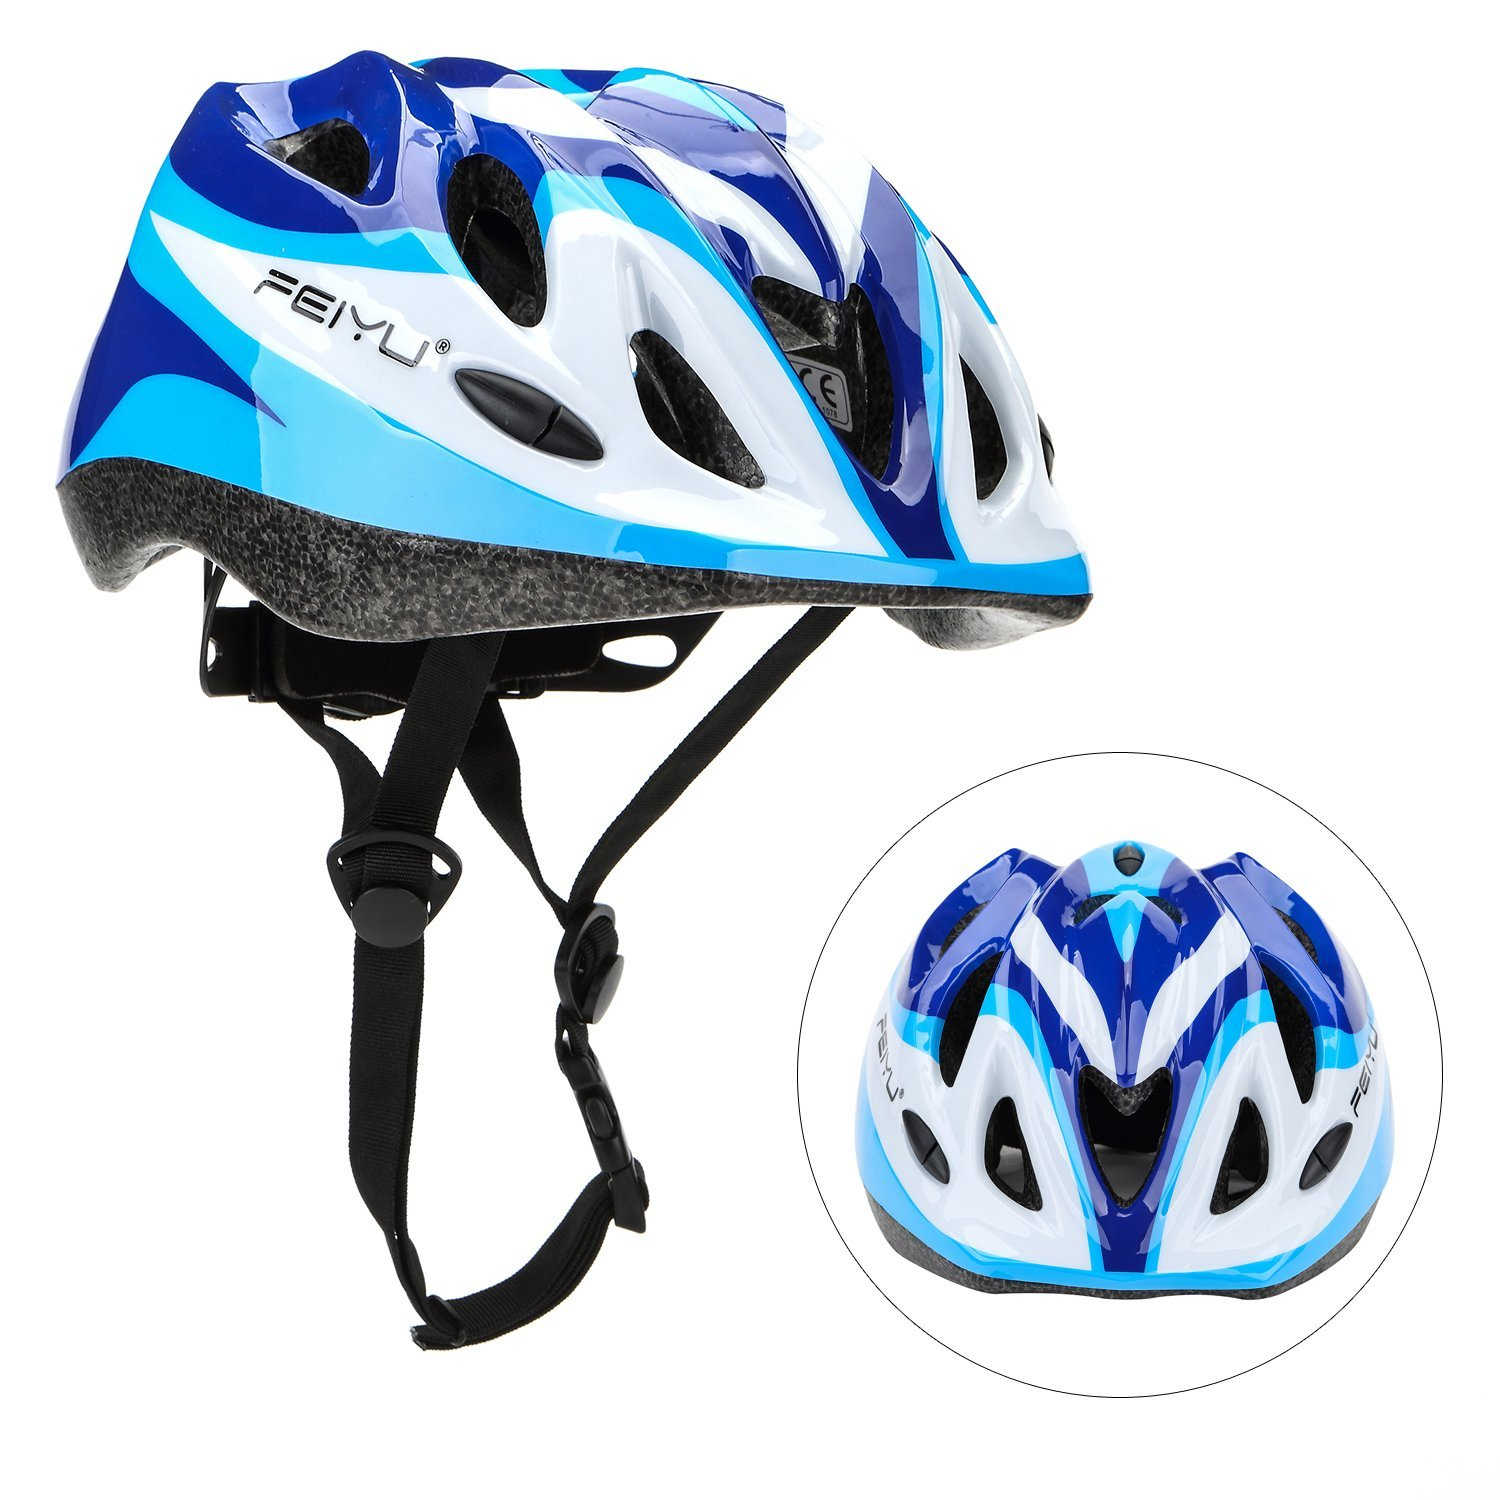 Pads YAHILL Multi-Use Safety Protective Gear Child//Teenager//Adult Helmet for Cycling Roller Skating and Other Extreme Sports for Cycling Roller Skating and Other Extreme Sports Kids-XS or Children//Kids//Adults Knee Elbow Wrist Pads